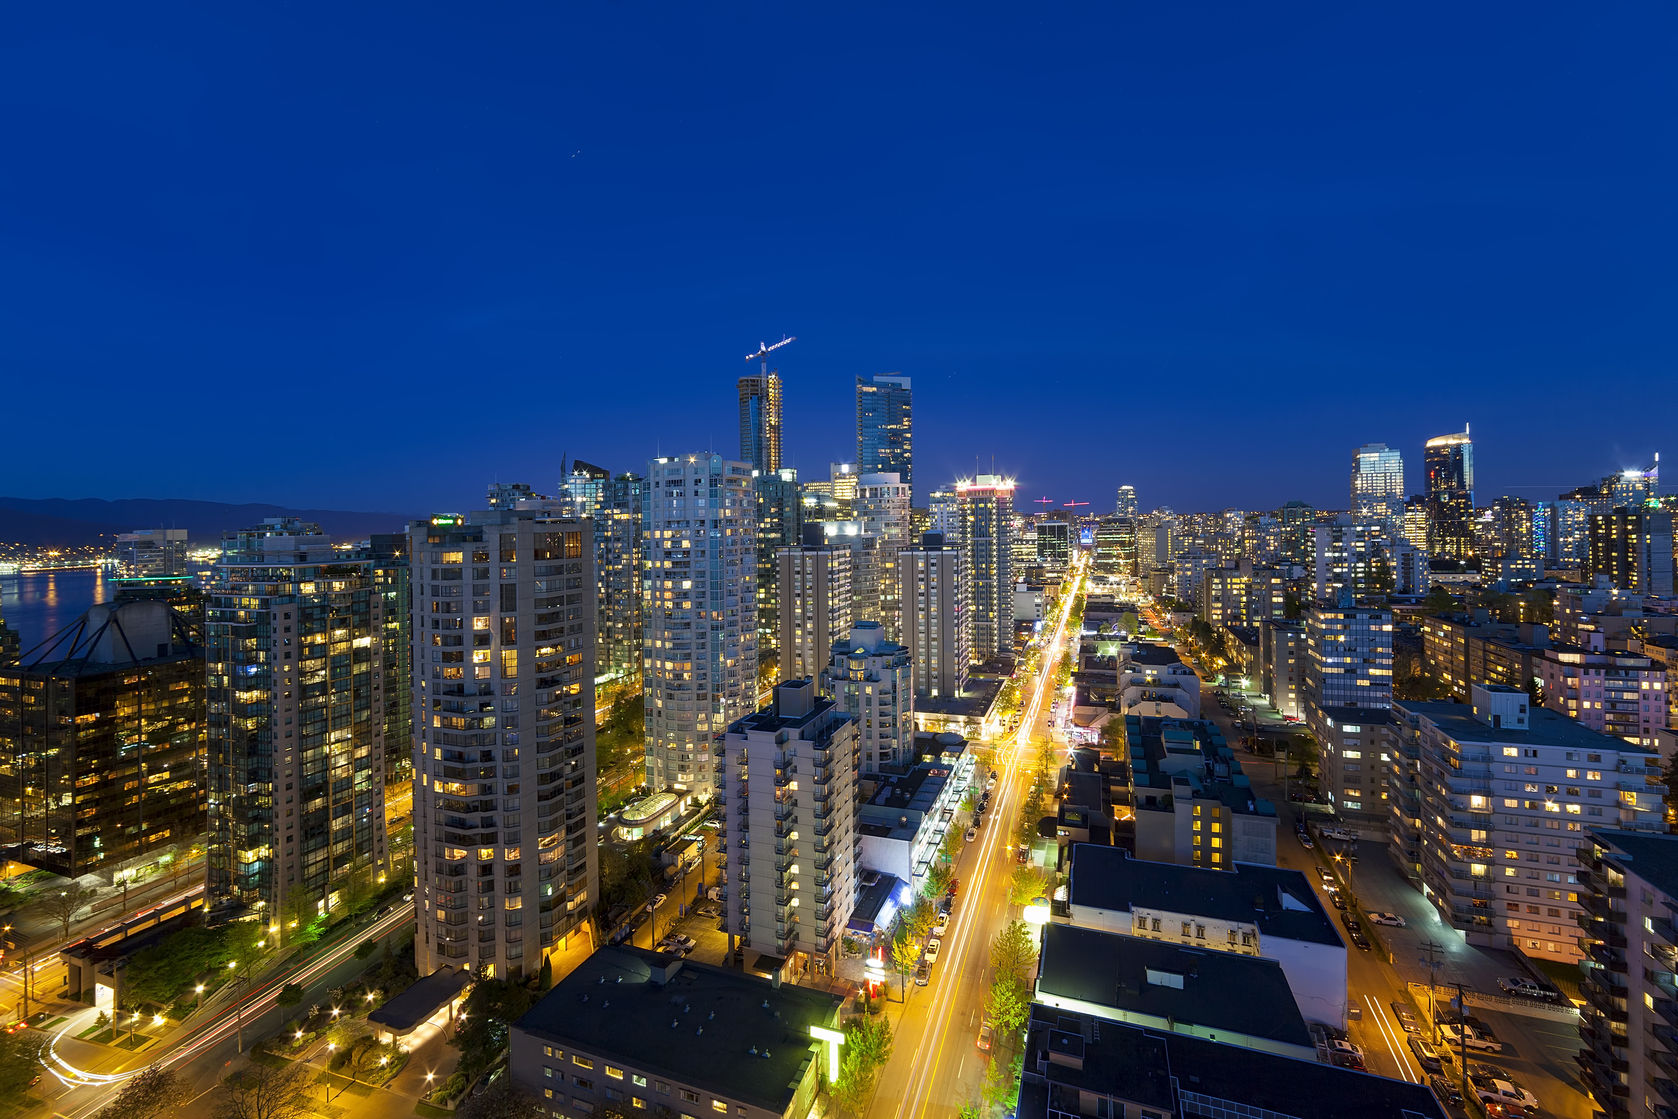 vancouver at night 123rf